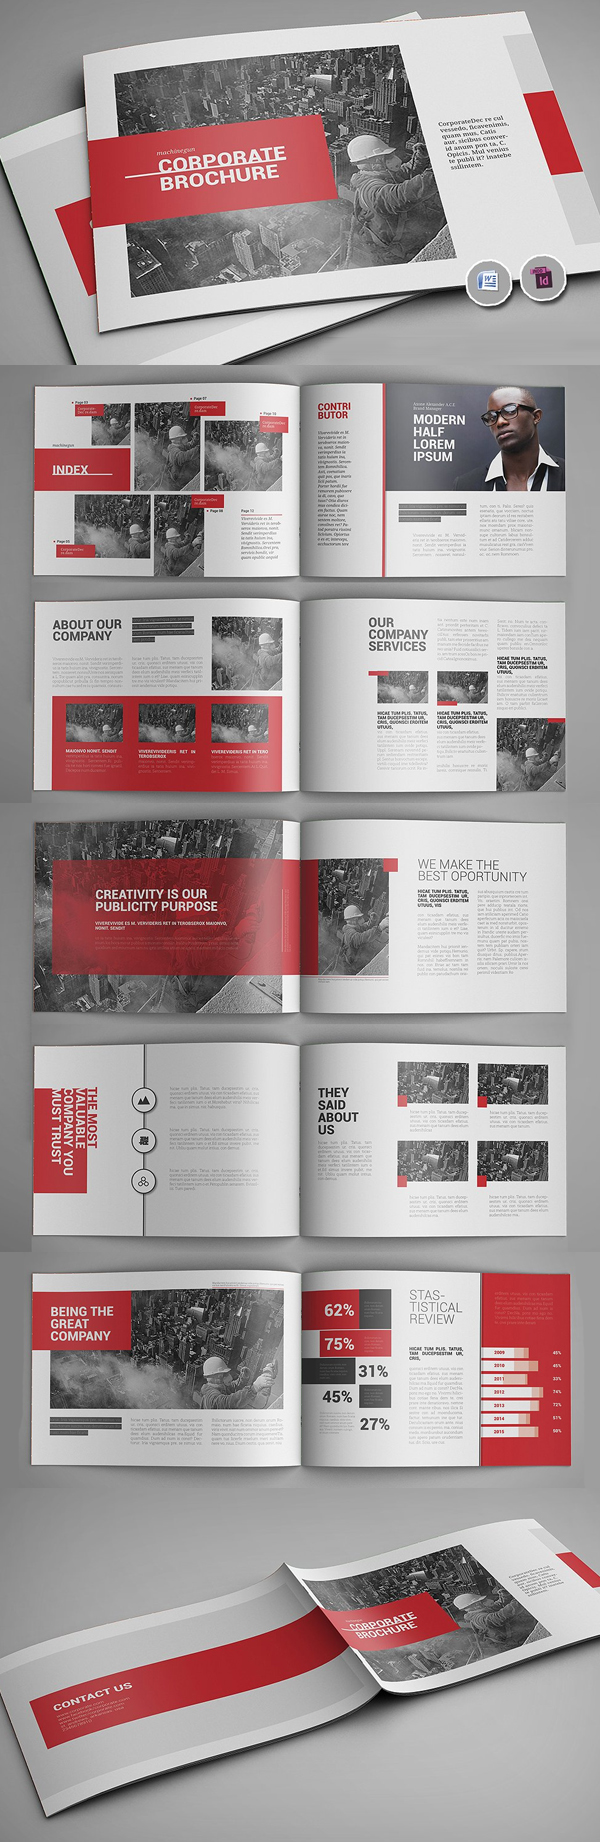 New brochure templates catalog design design graphic for Graphic design brochure